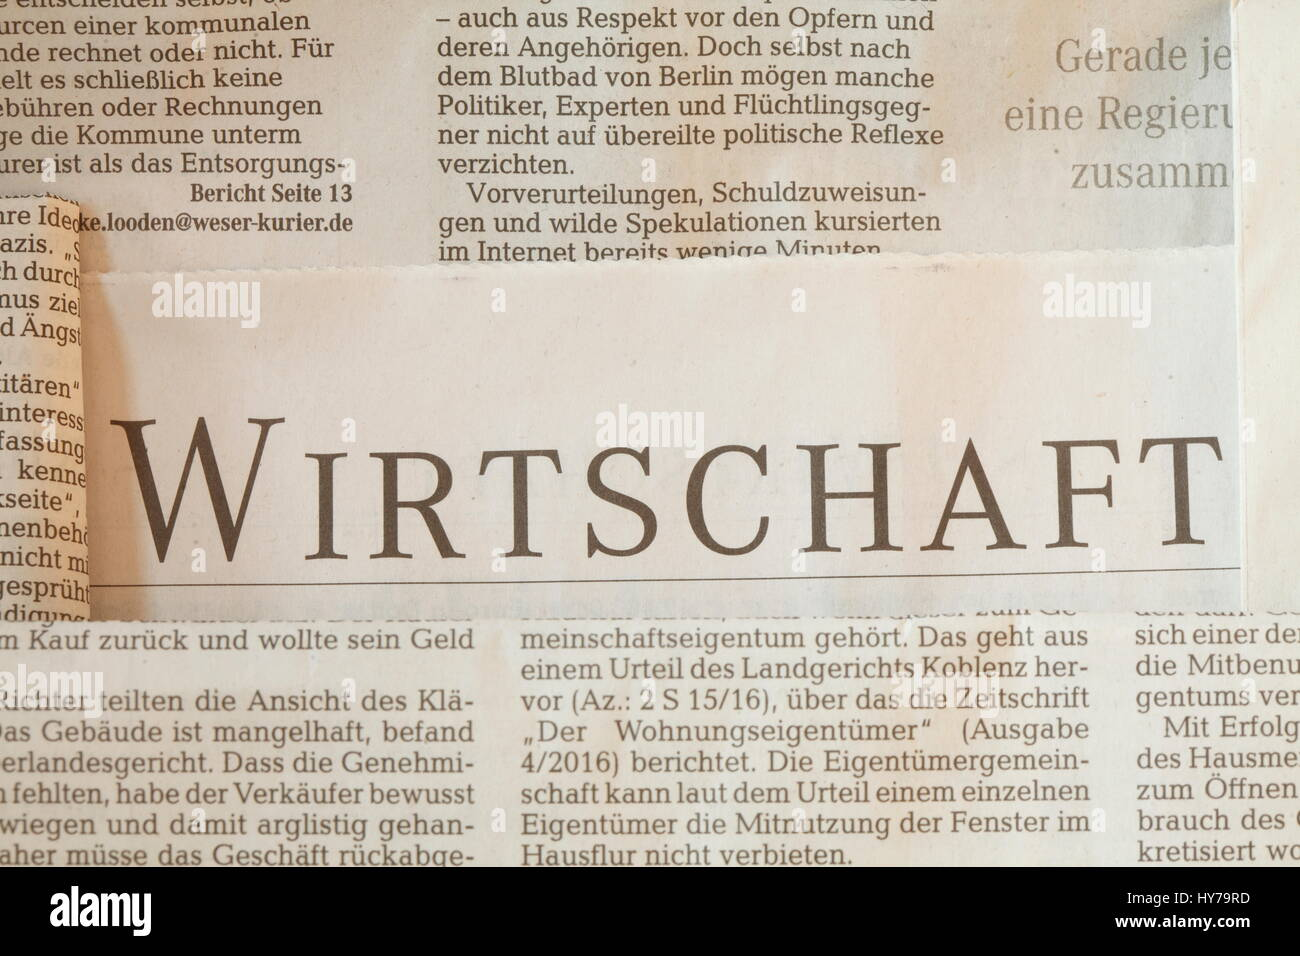 Newspaper, Text Economy (Wirtschaft in german) - Stock Image